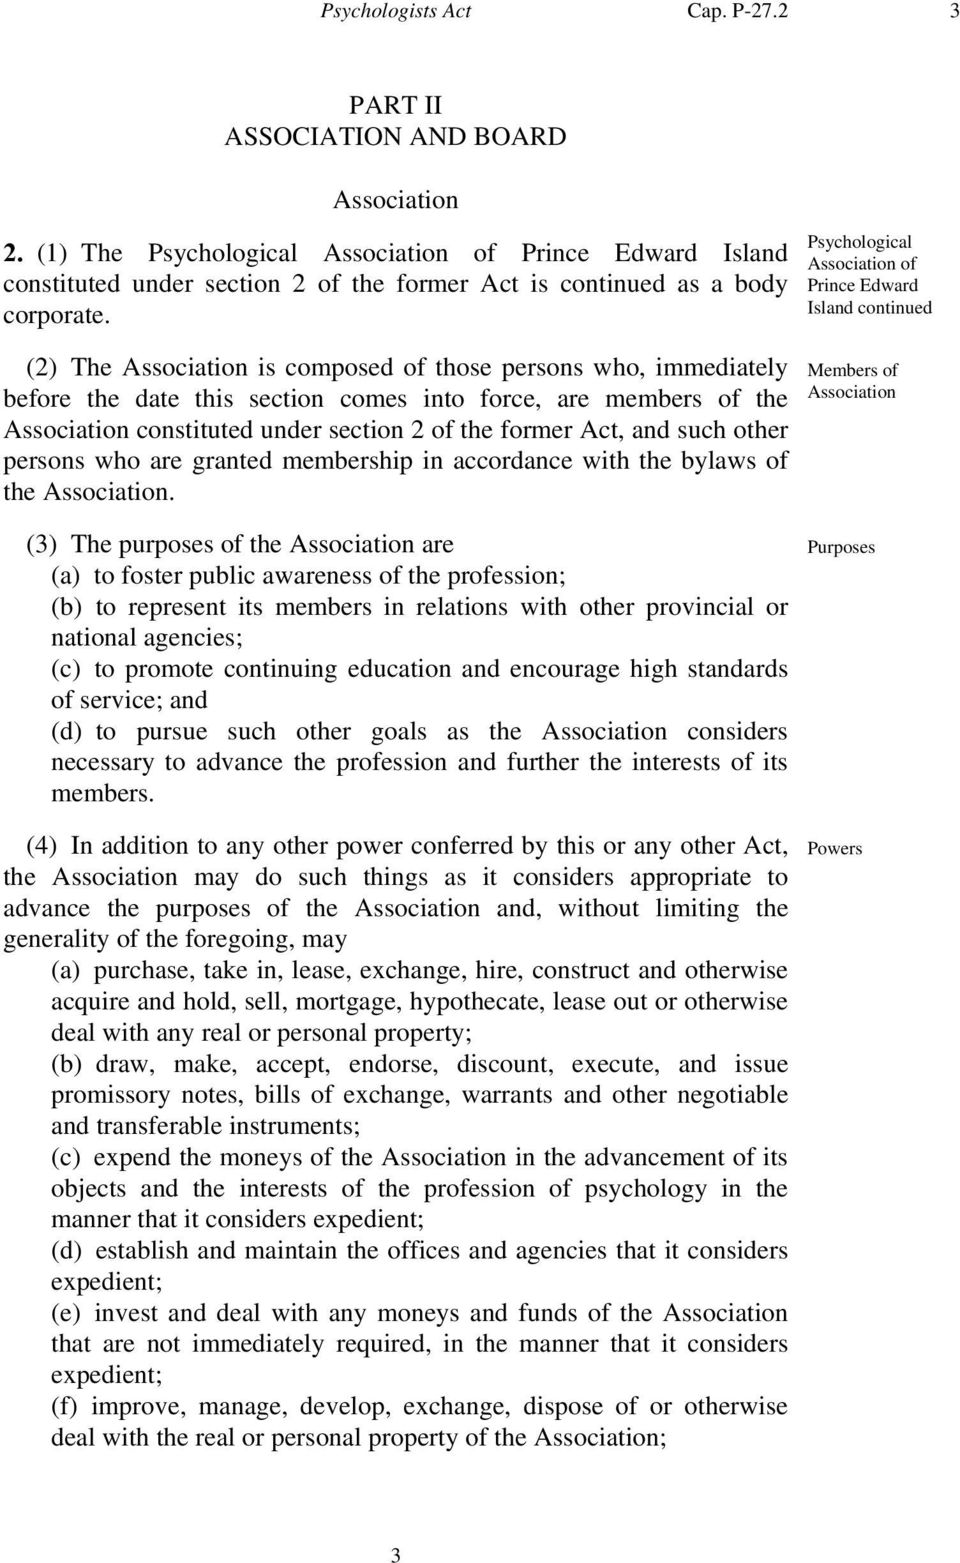 (2) The Association is composed of those persons who, immediately before the date this section comes into force, are members of the Association constituted under section 2 of the former Act, and such